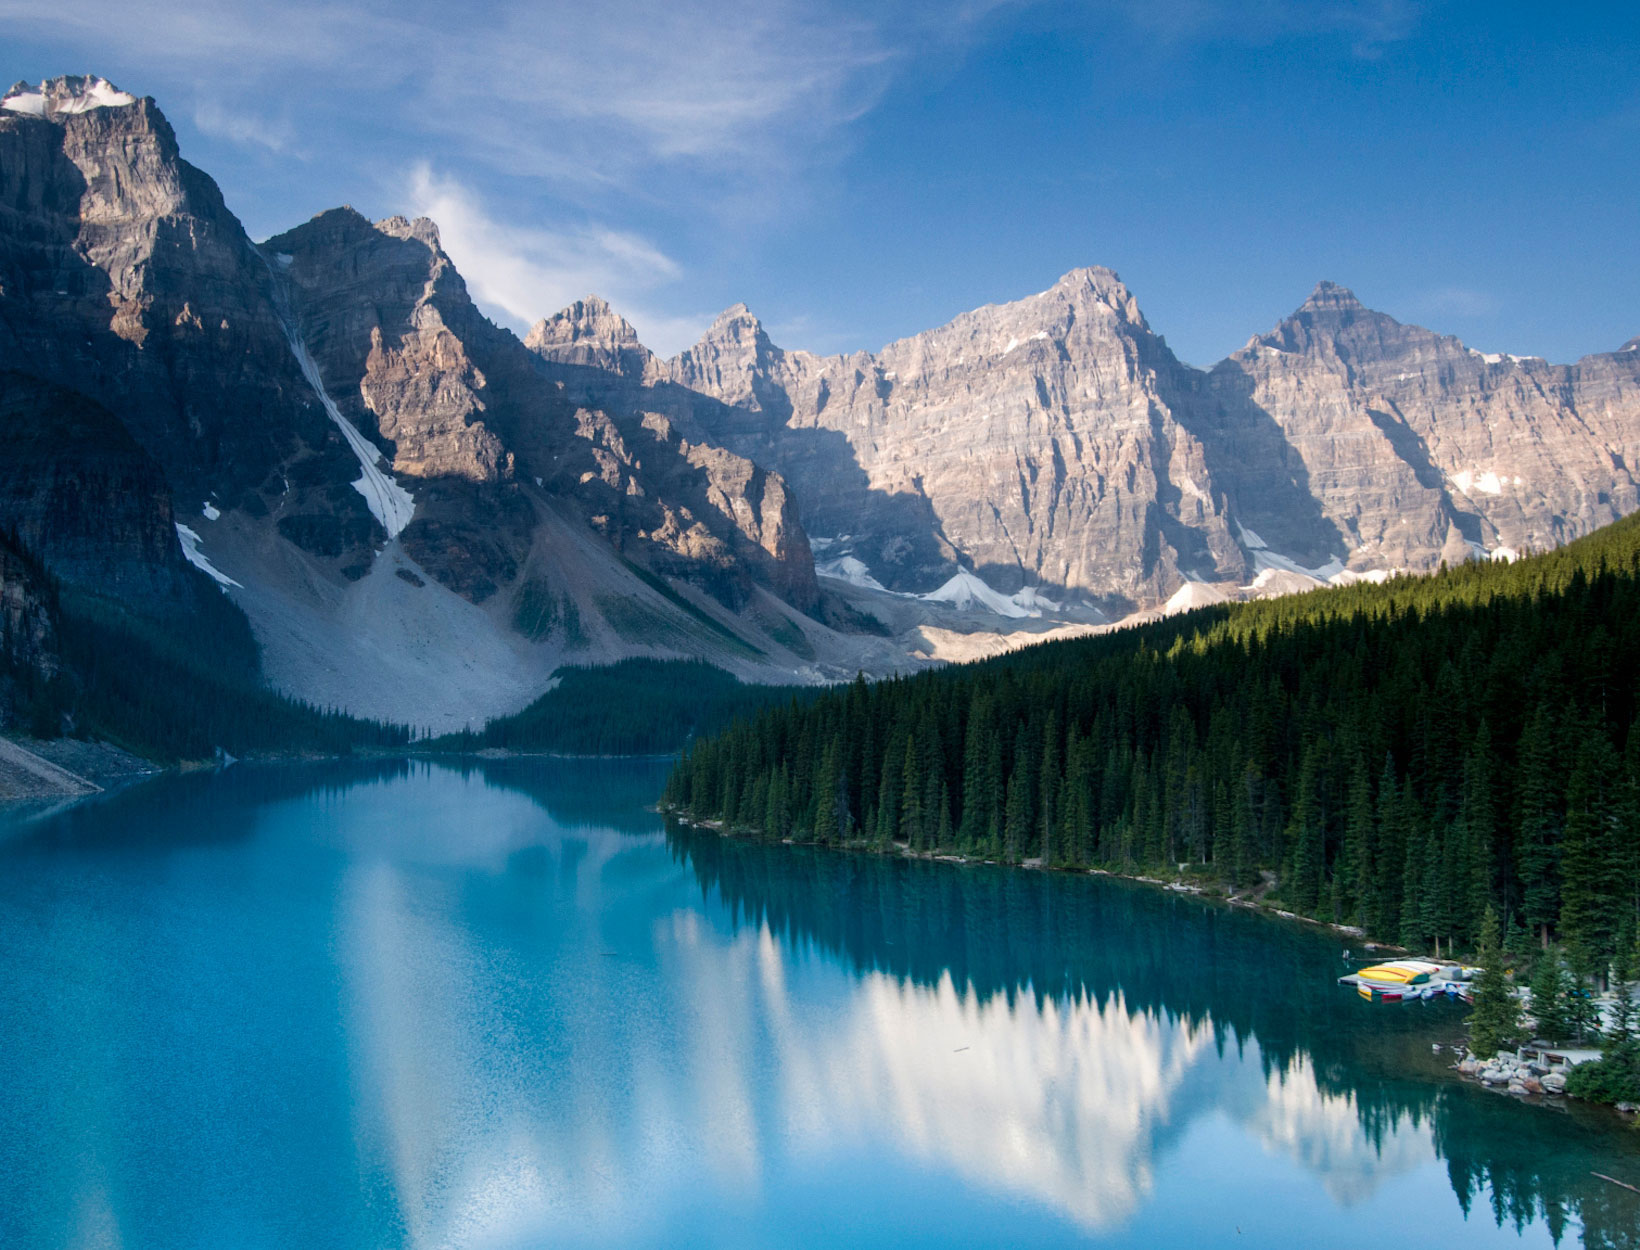 Early Fall Hd Wallpaper Banff Travel Guide Plan Your Trip To Banff Goop